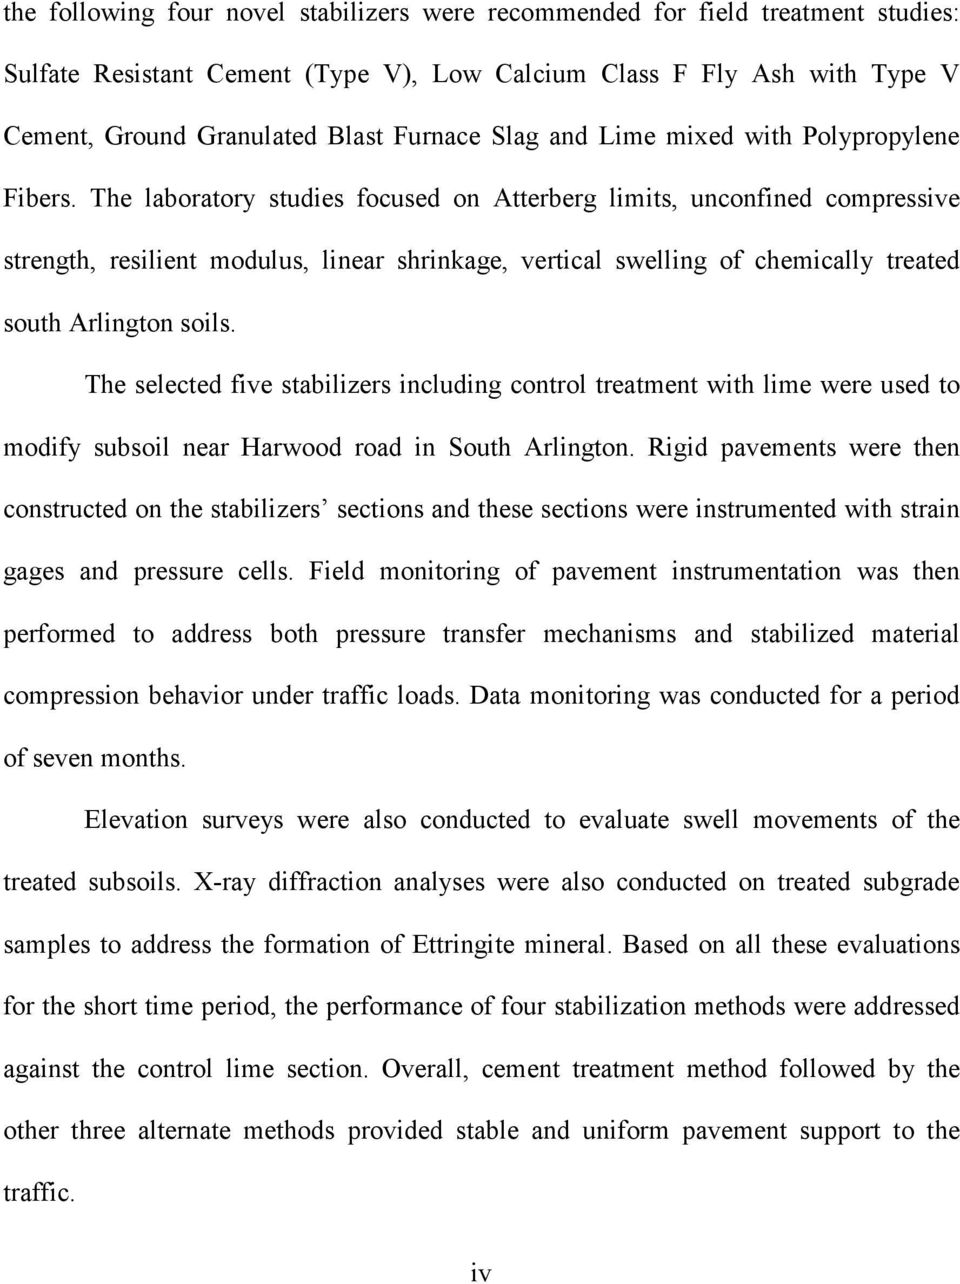 The laboratory studies focused on Atterberg limits, unconfined compressive strength, resilient modulus, linear shrinkage, vertical swelling of chemically treated south Arlington soils.